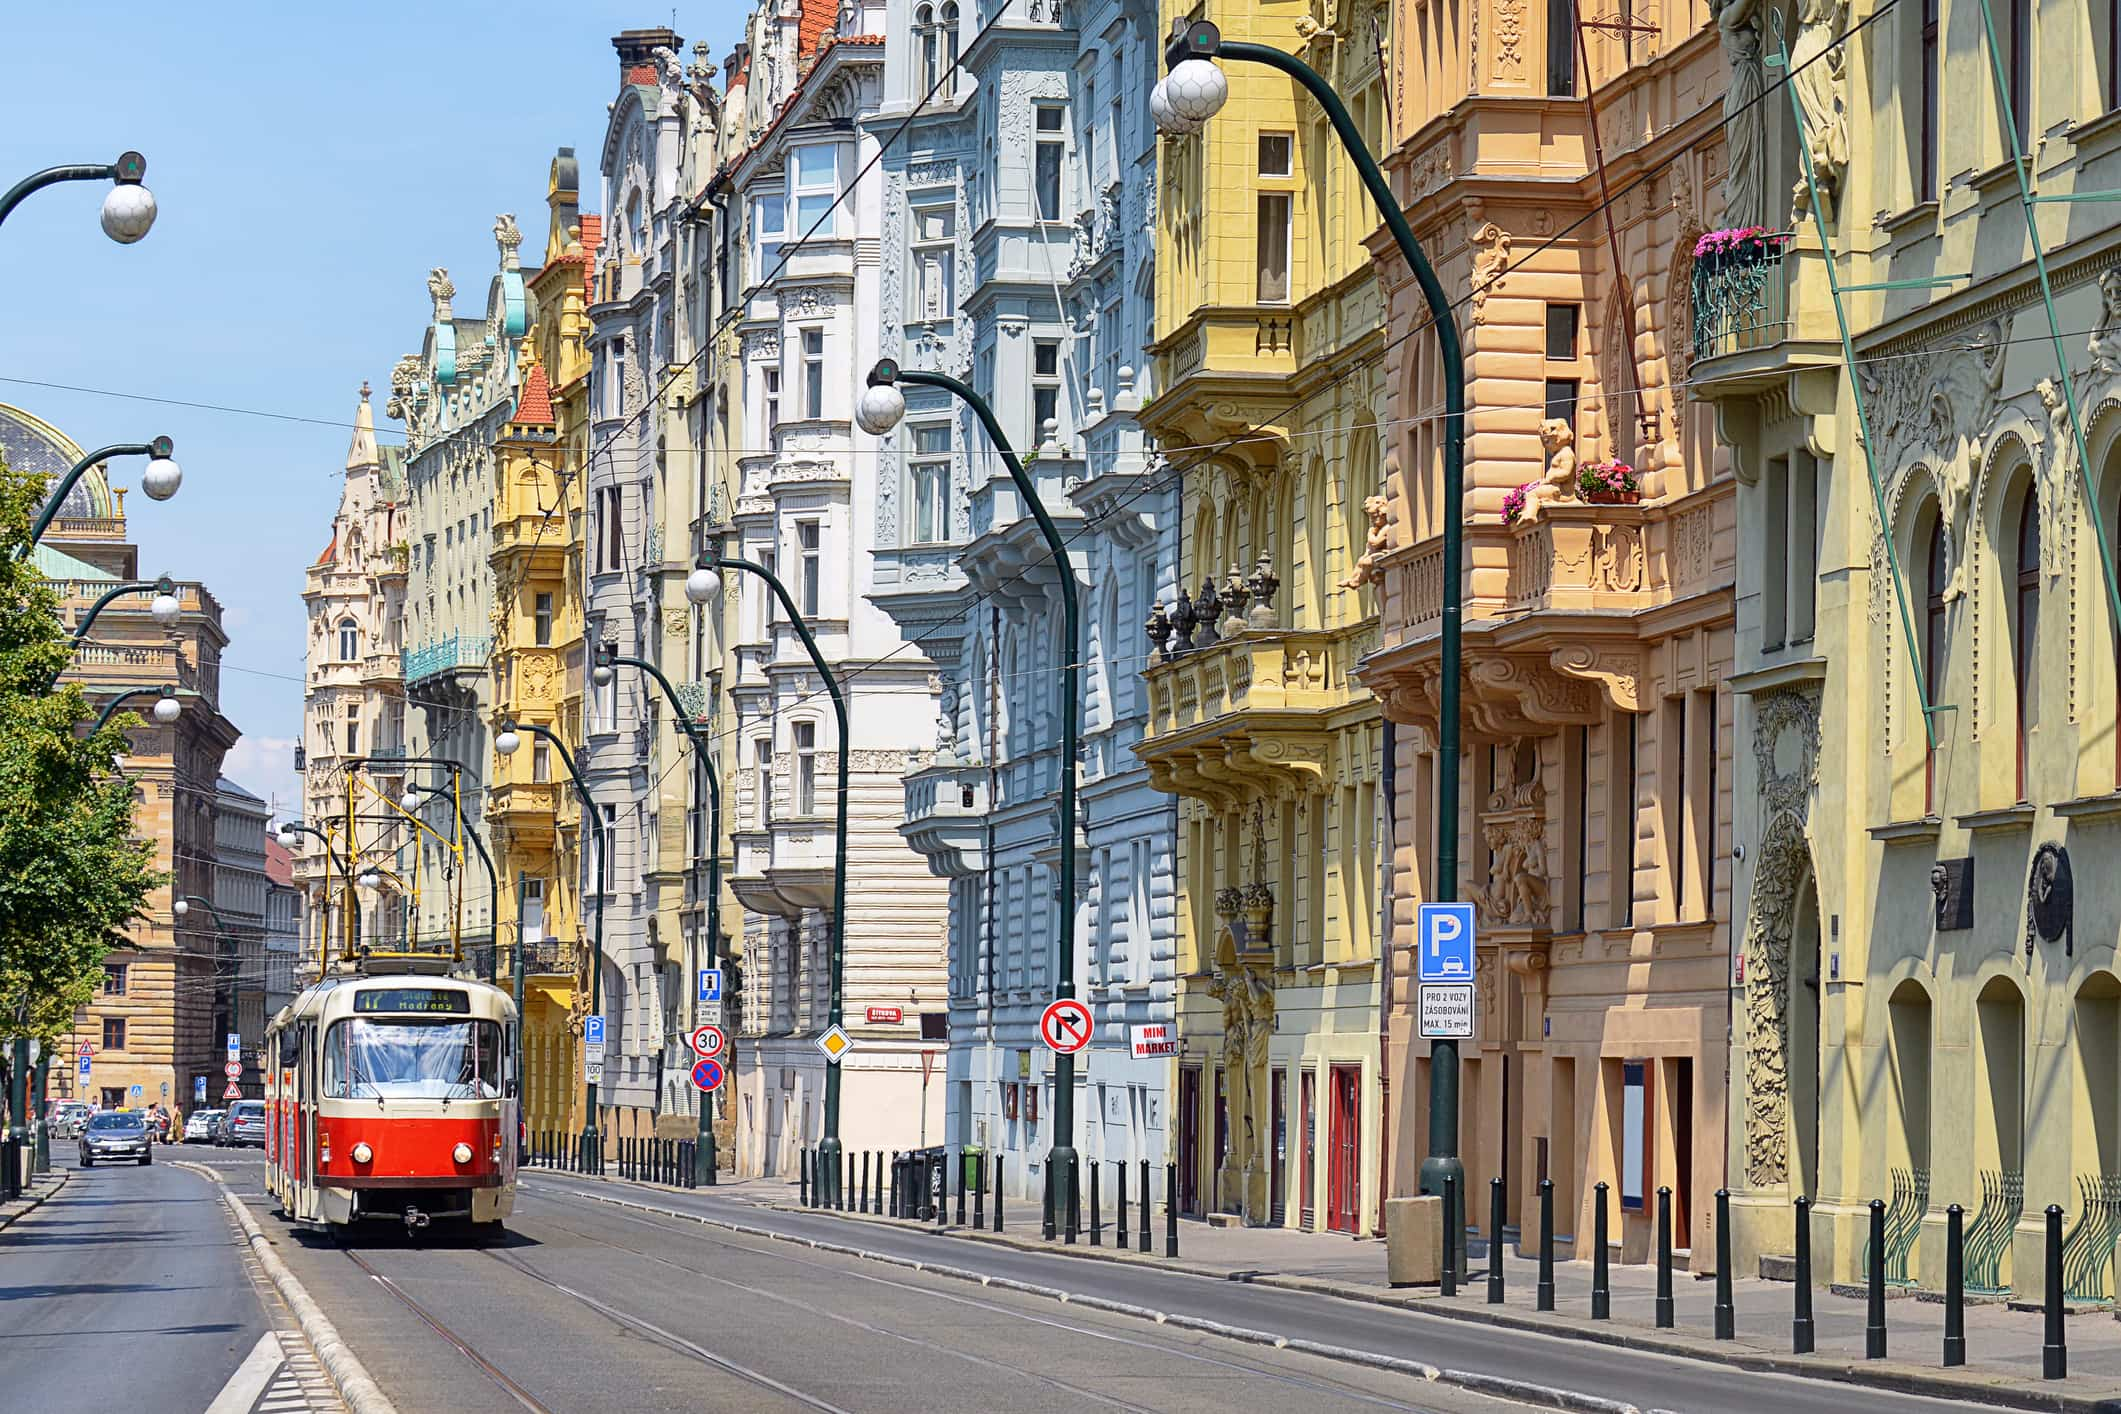 Prague Rent Prices are Now Higher Than the Average Czech Salary